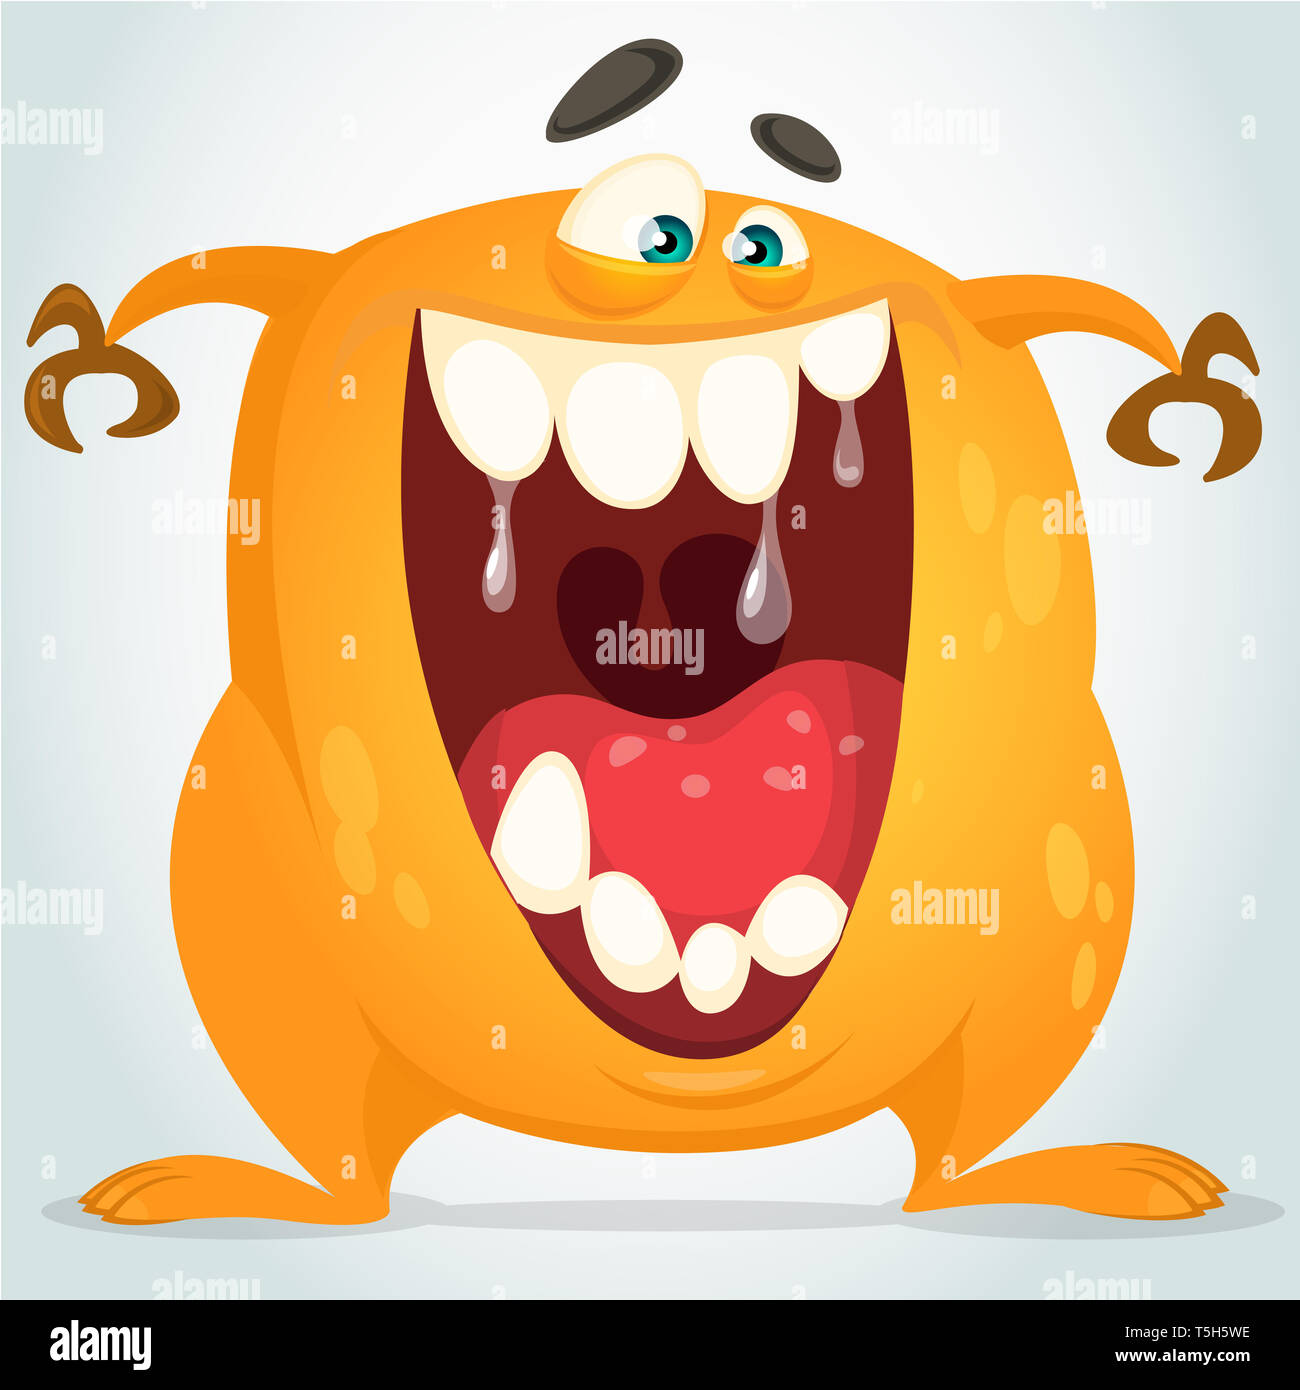 Cartoon funny orange monster with opened mouth full of teeth. Halloween vector illustration. Monster clipart for print, stickers or logo - Stock Image